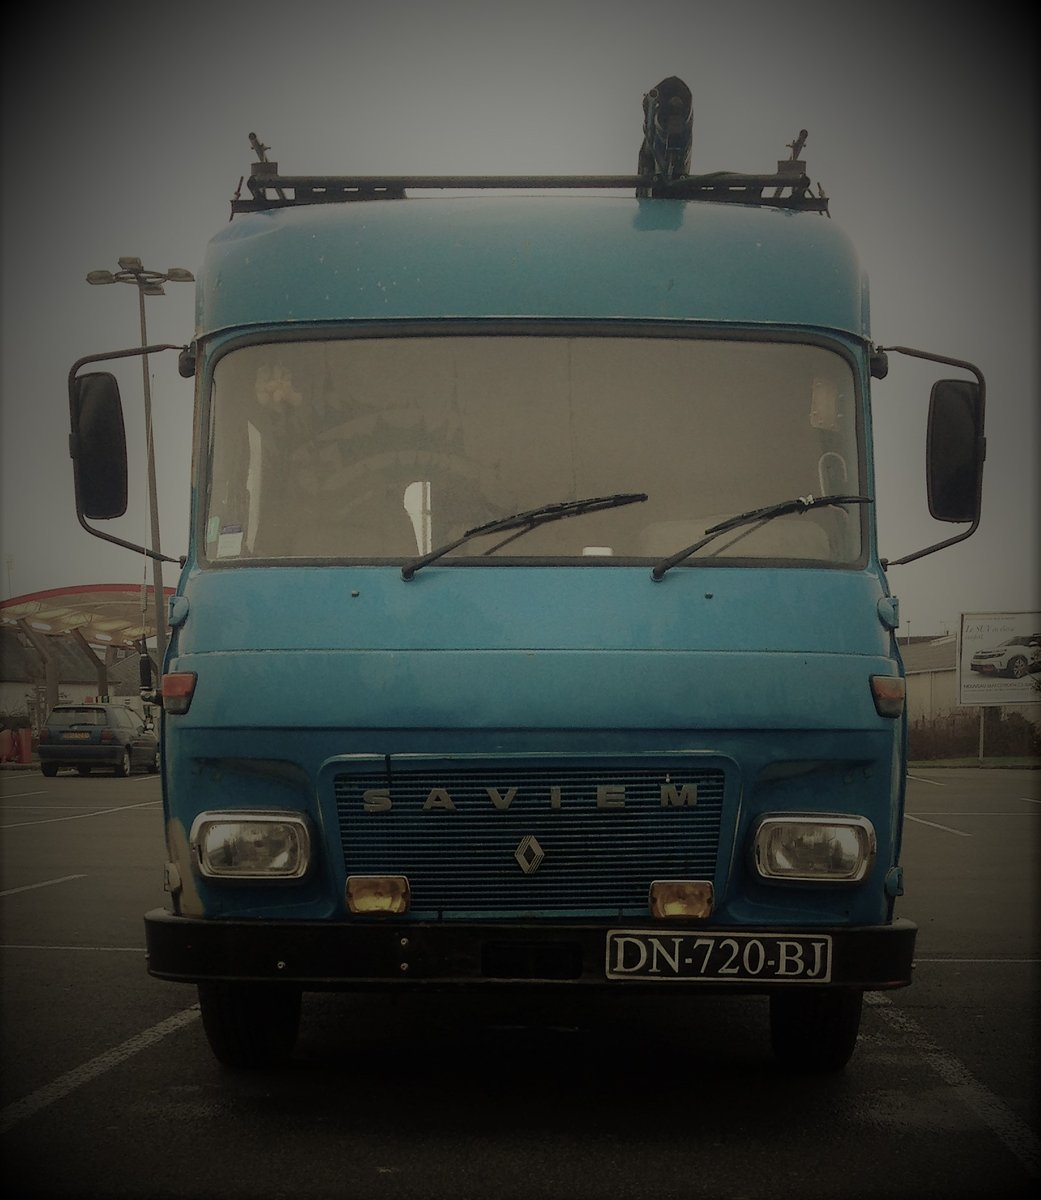 1970 Vintage Saviem sg2 - perfect food truck or camper For Sale (picture 6 of 6)